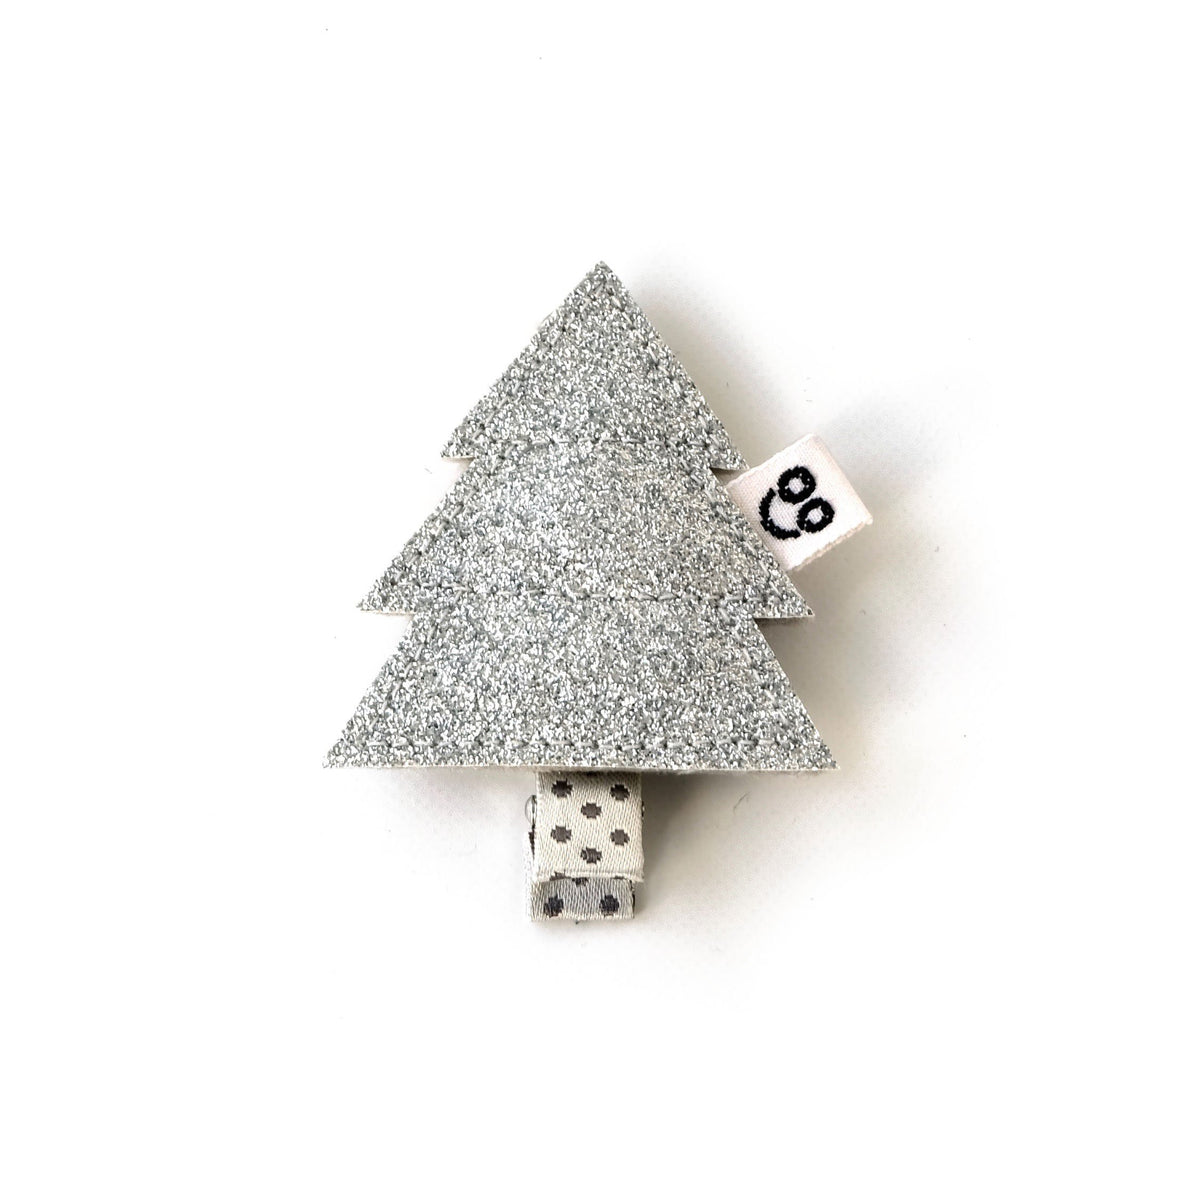 Pine tree hair clip in silver.